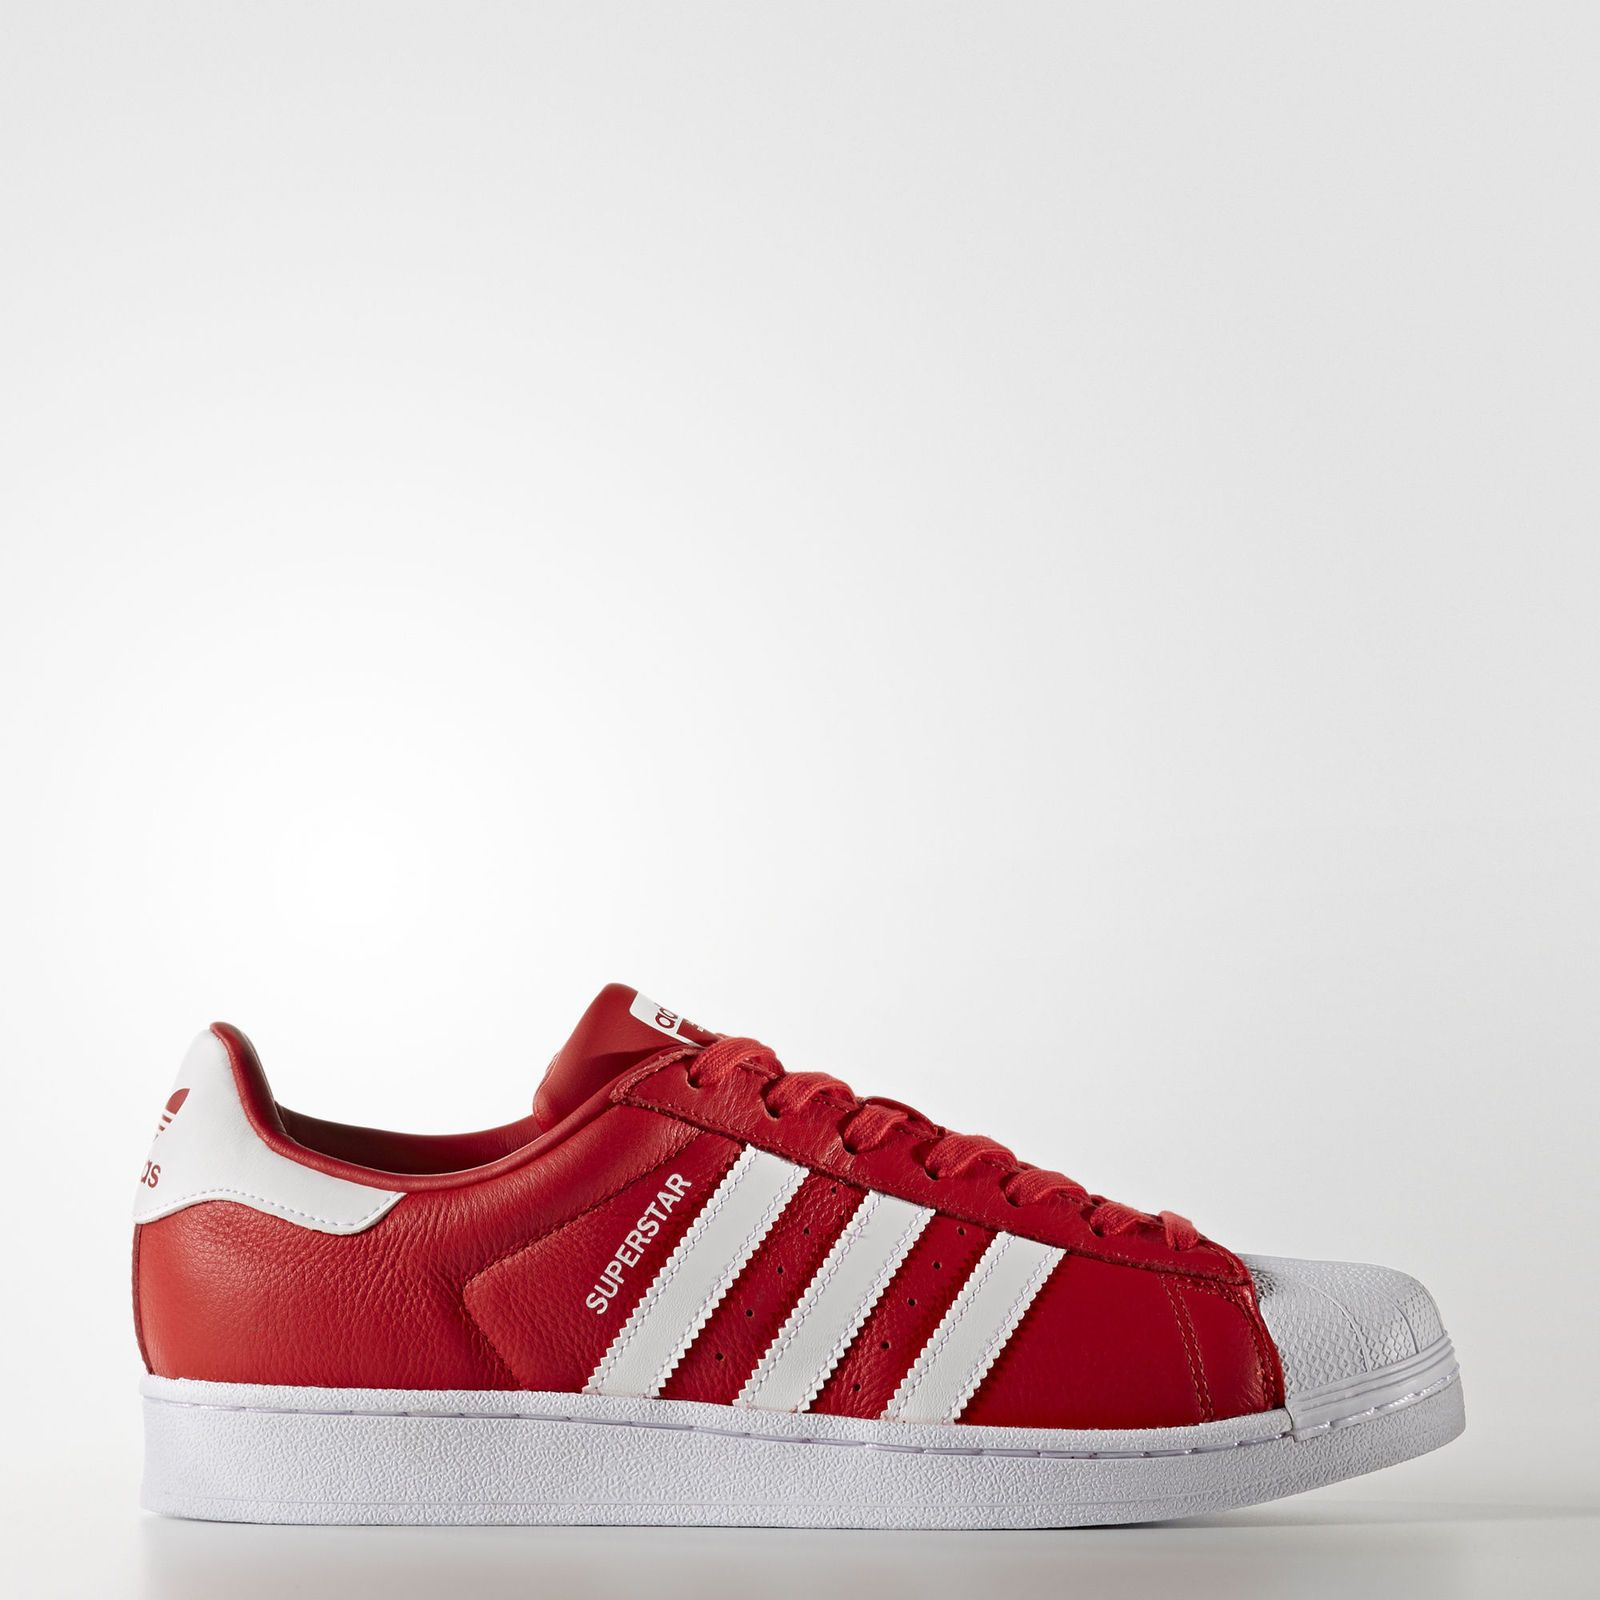 on sale 9498c fe1b1 ... discount code for 29.99 was 80 62 off adidas superstar foundation shoes  mens red dealfomo bfce8